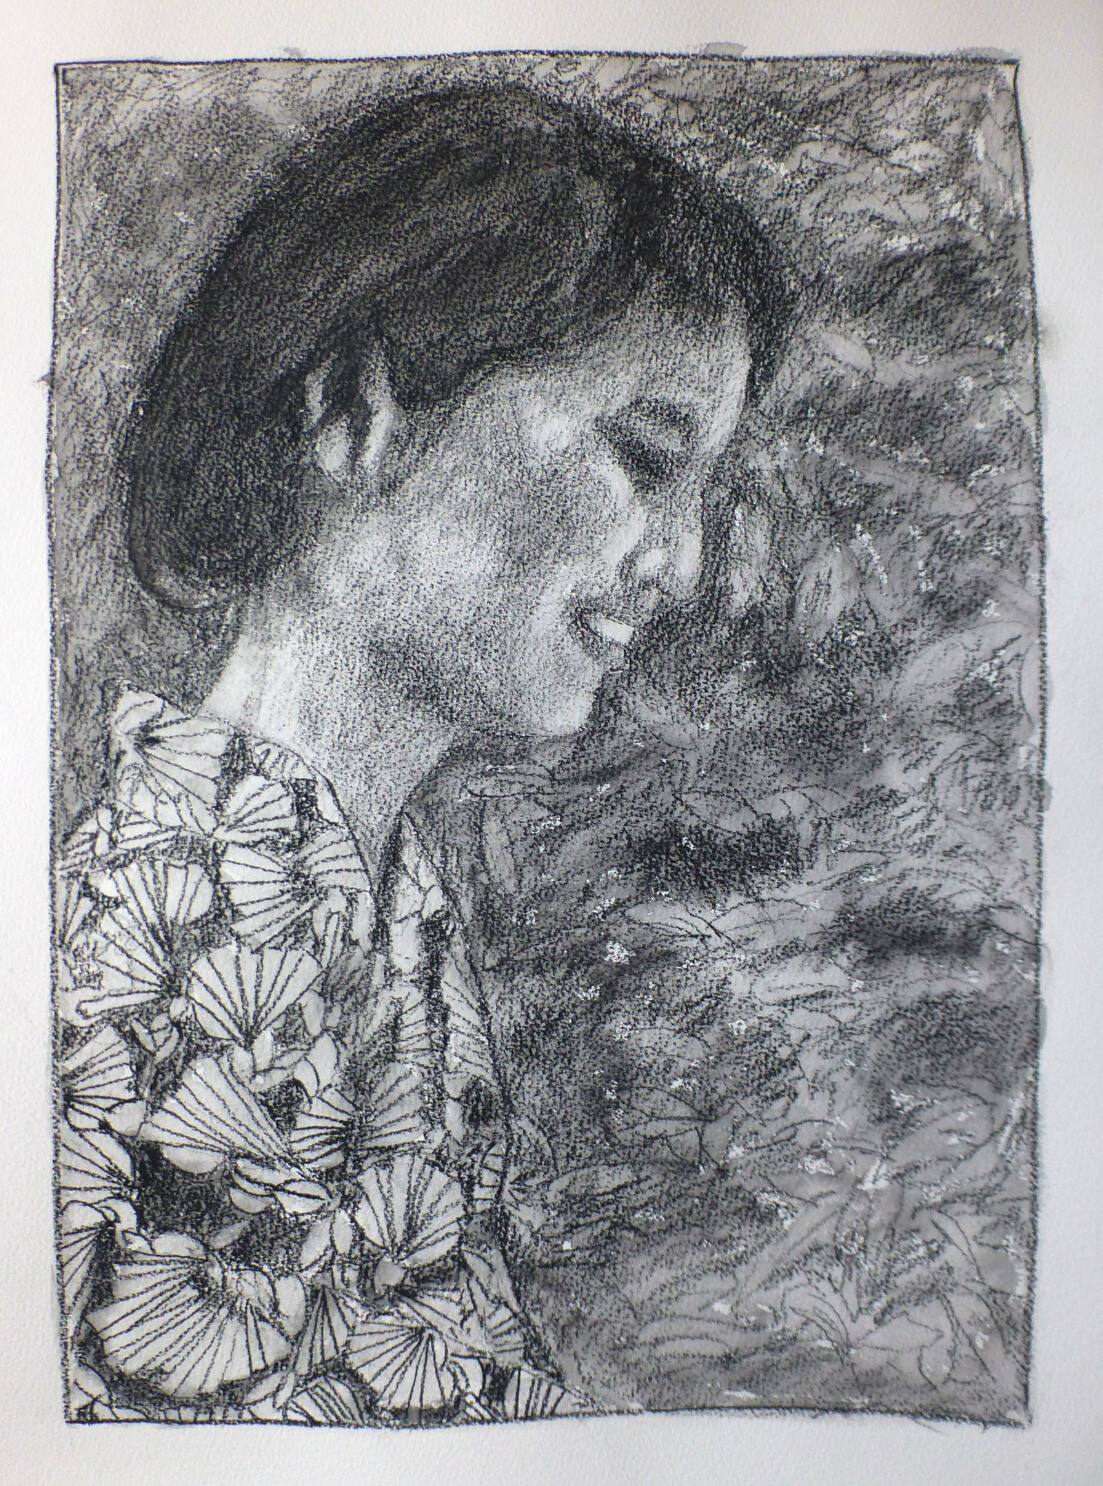 A pencil portrait of a Japanese woman in profile, wearing a yukata with a stylised ginkho leaf pattern. The scene is quite dark, the face has some highlights from an invisible light source placed in front and below the character. The background is a sketchy rendering of vegetation.